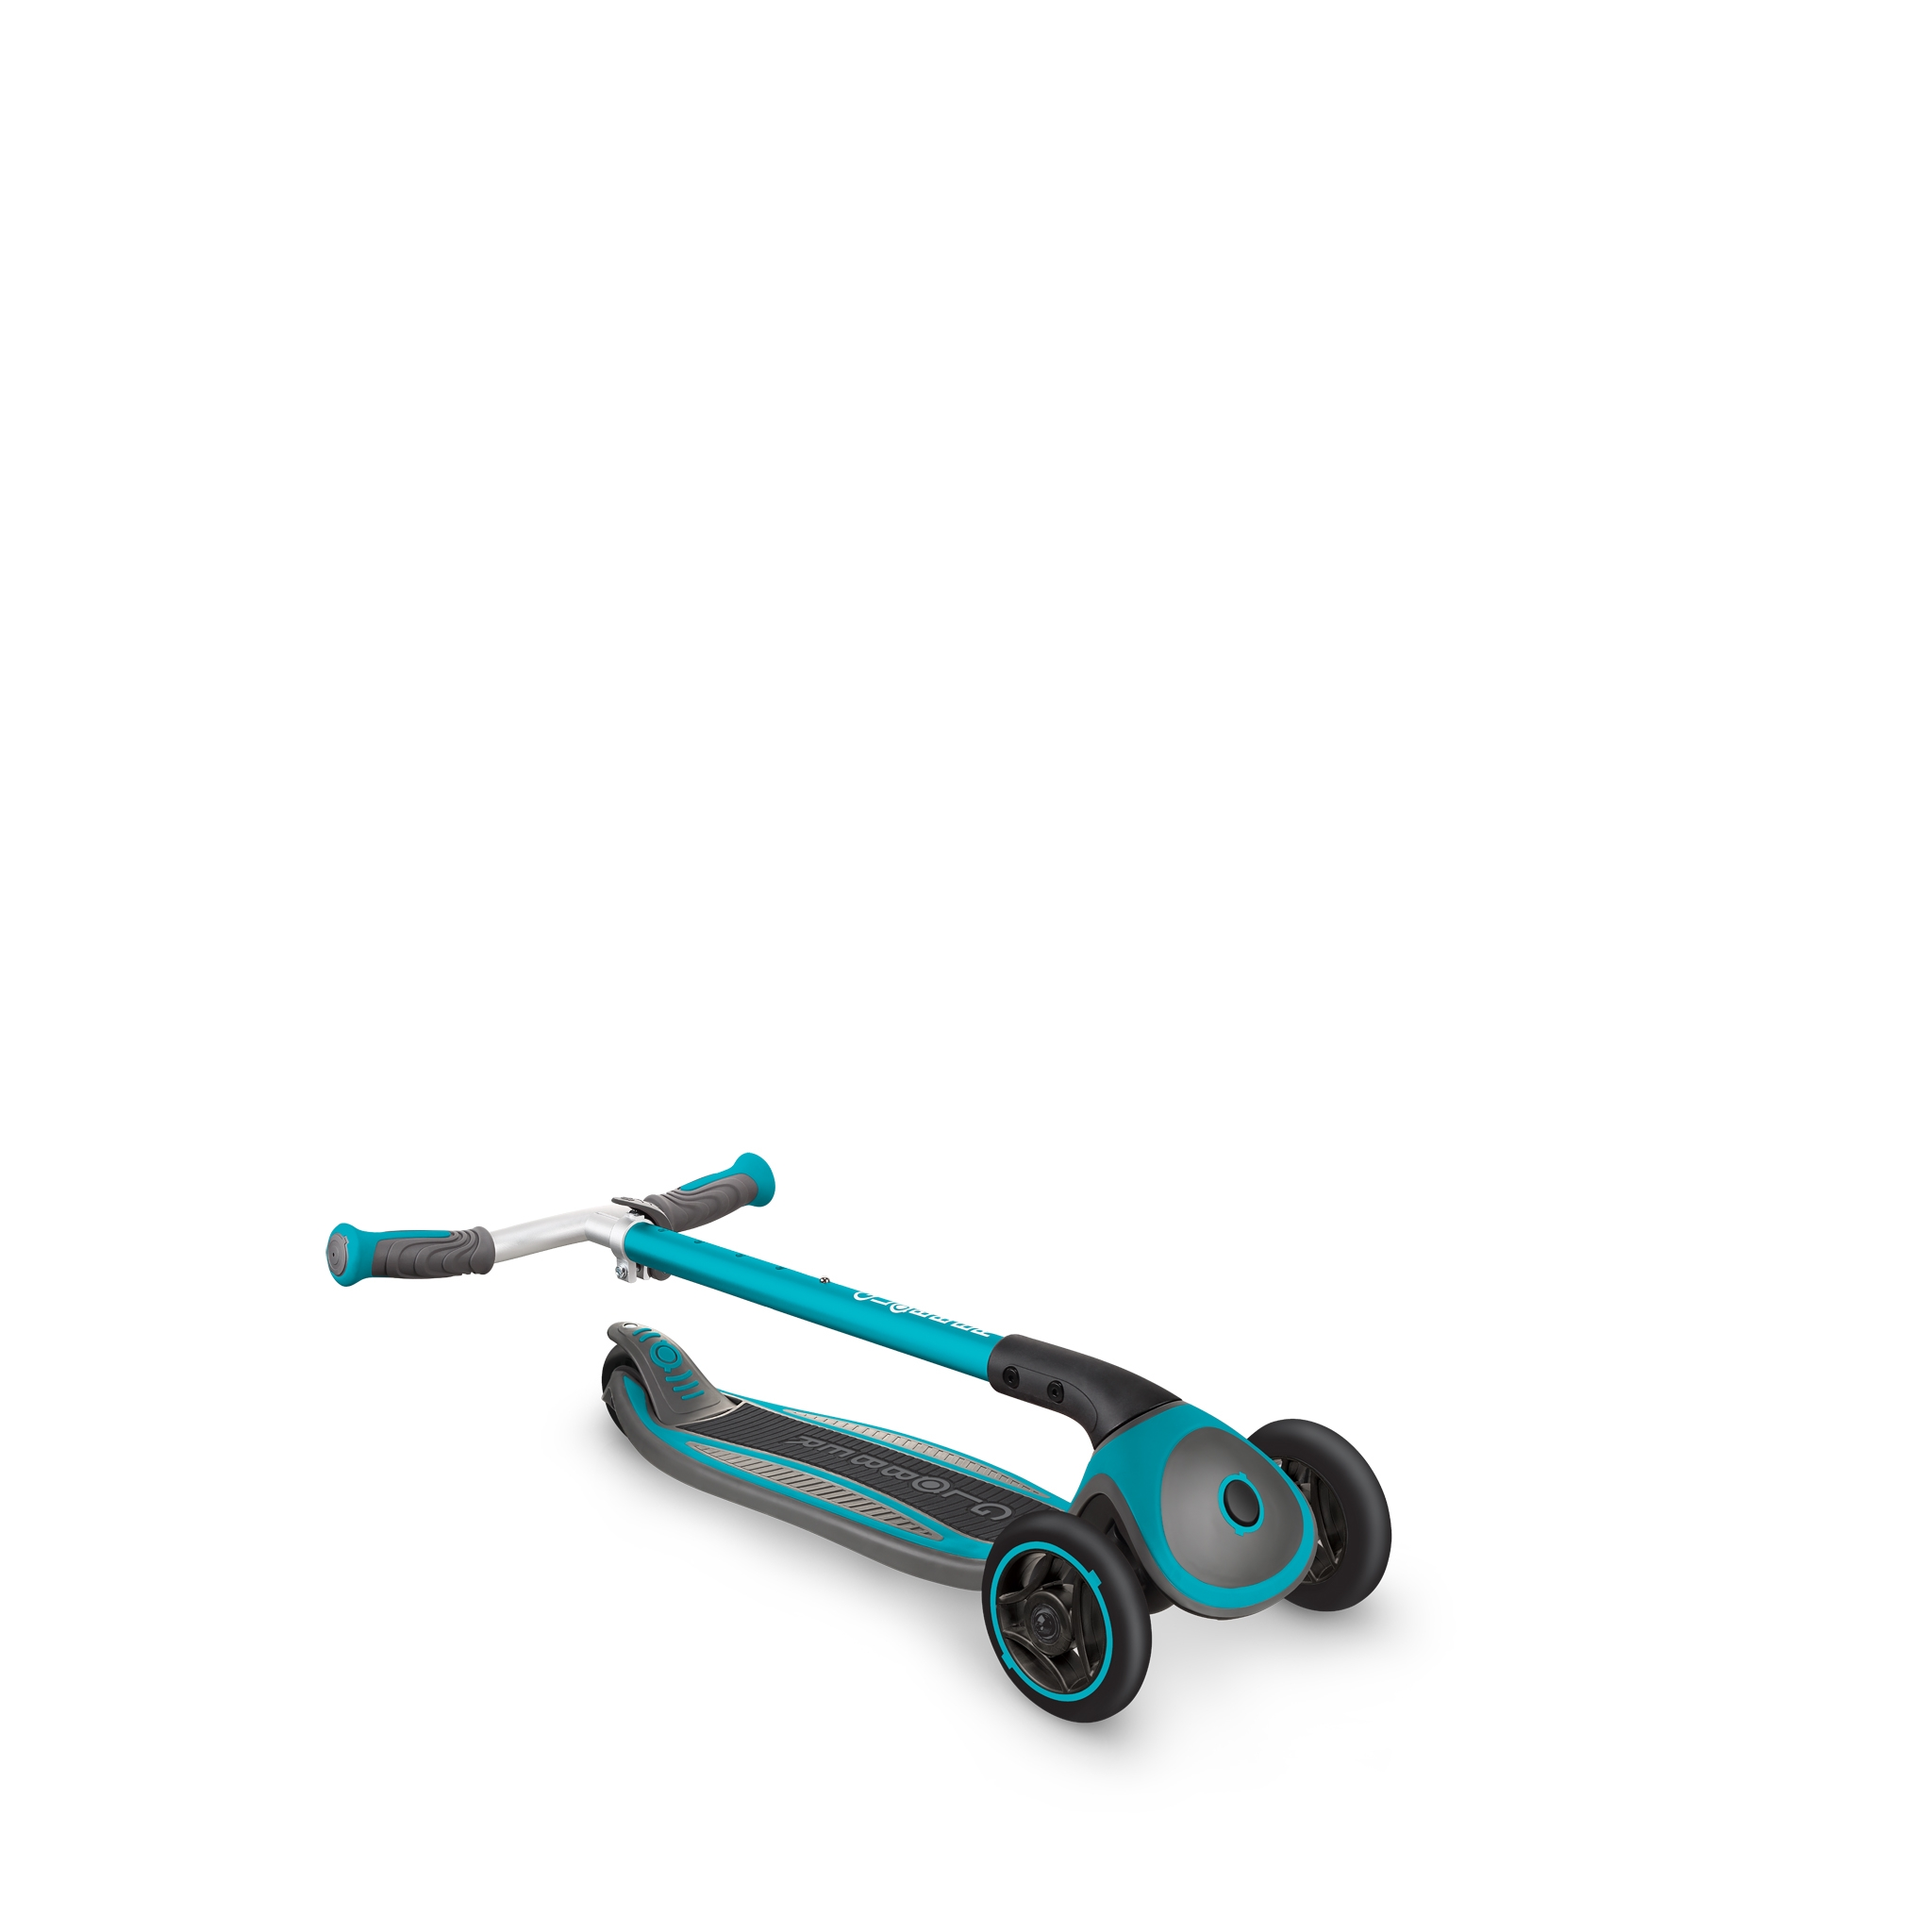 Globber-MASTER-convenient-foldable-3-wheel-scooter-for-kids-with-patented-folding-system_teal 3